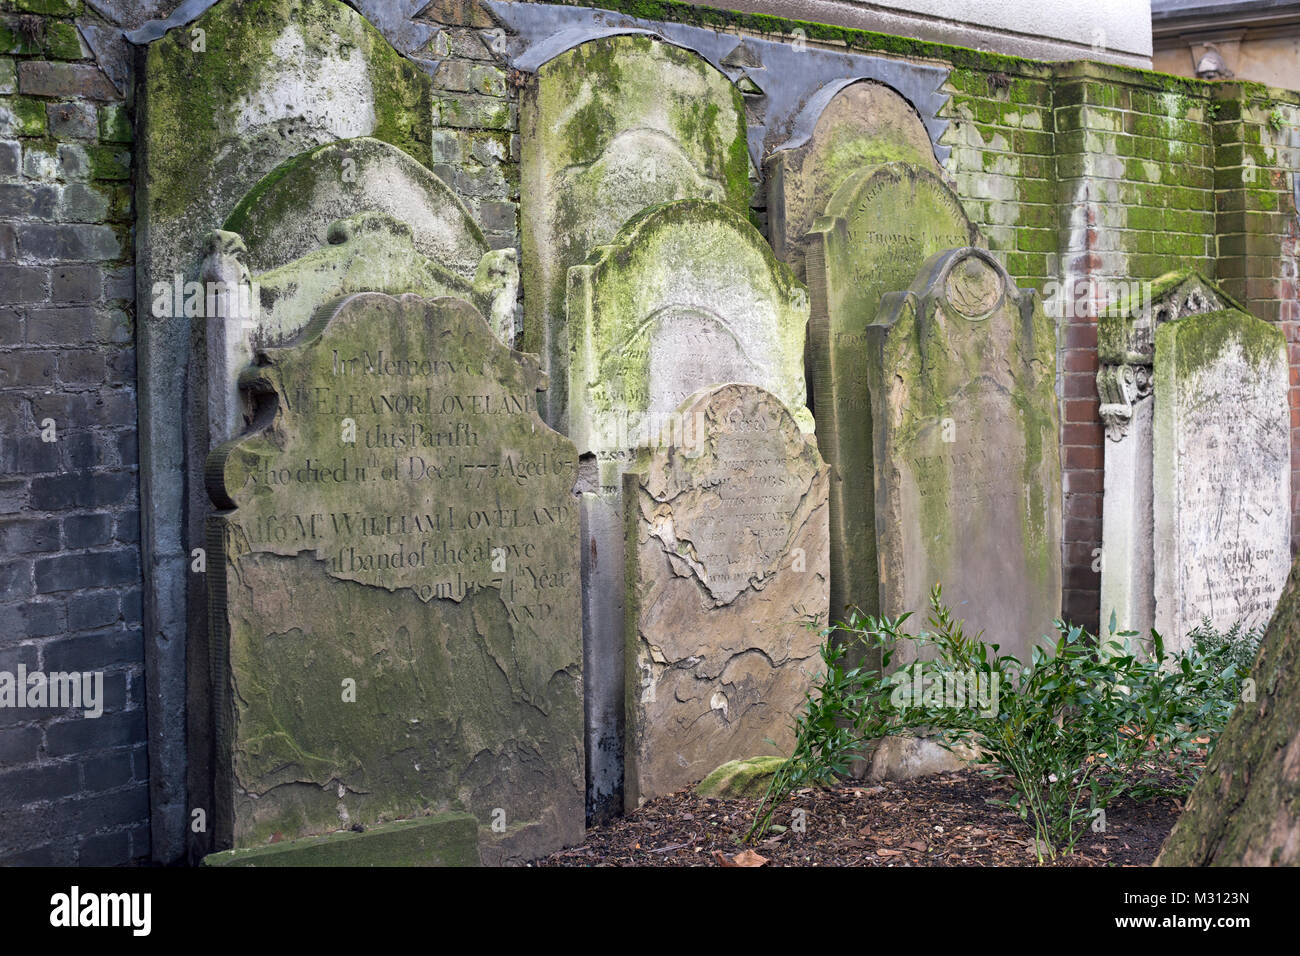 London, England, February 2018, graves packed tightly in a city graveyard - Stock Image